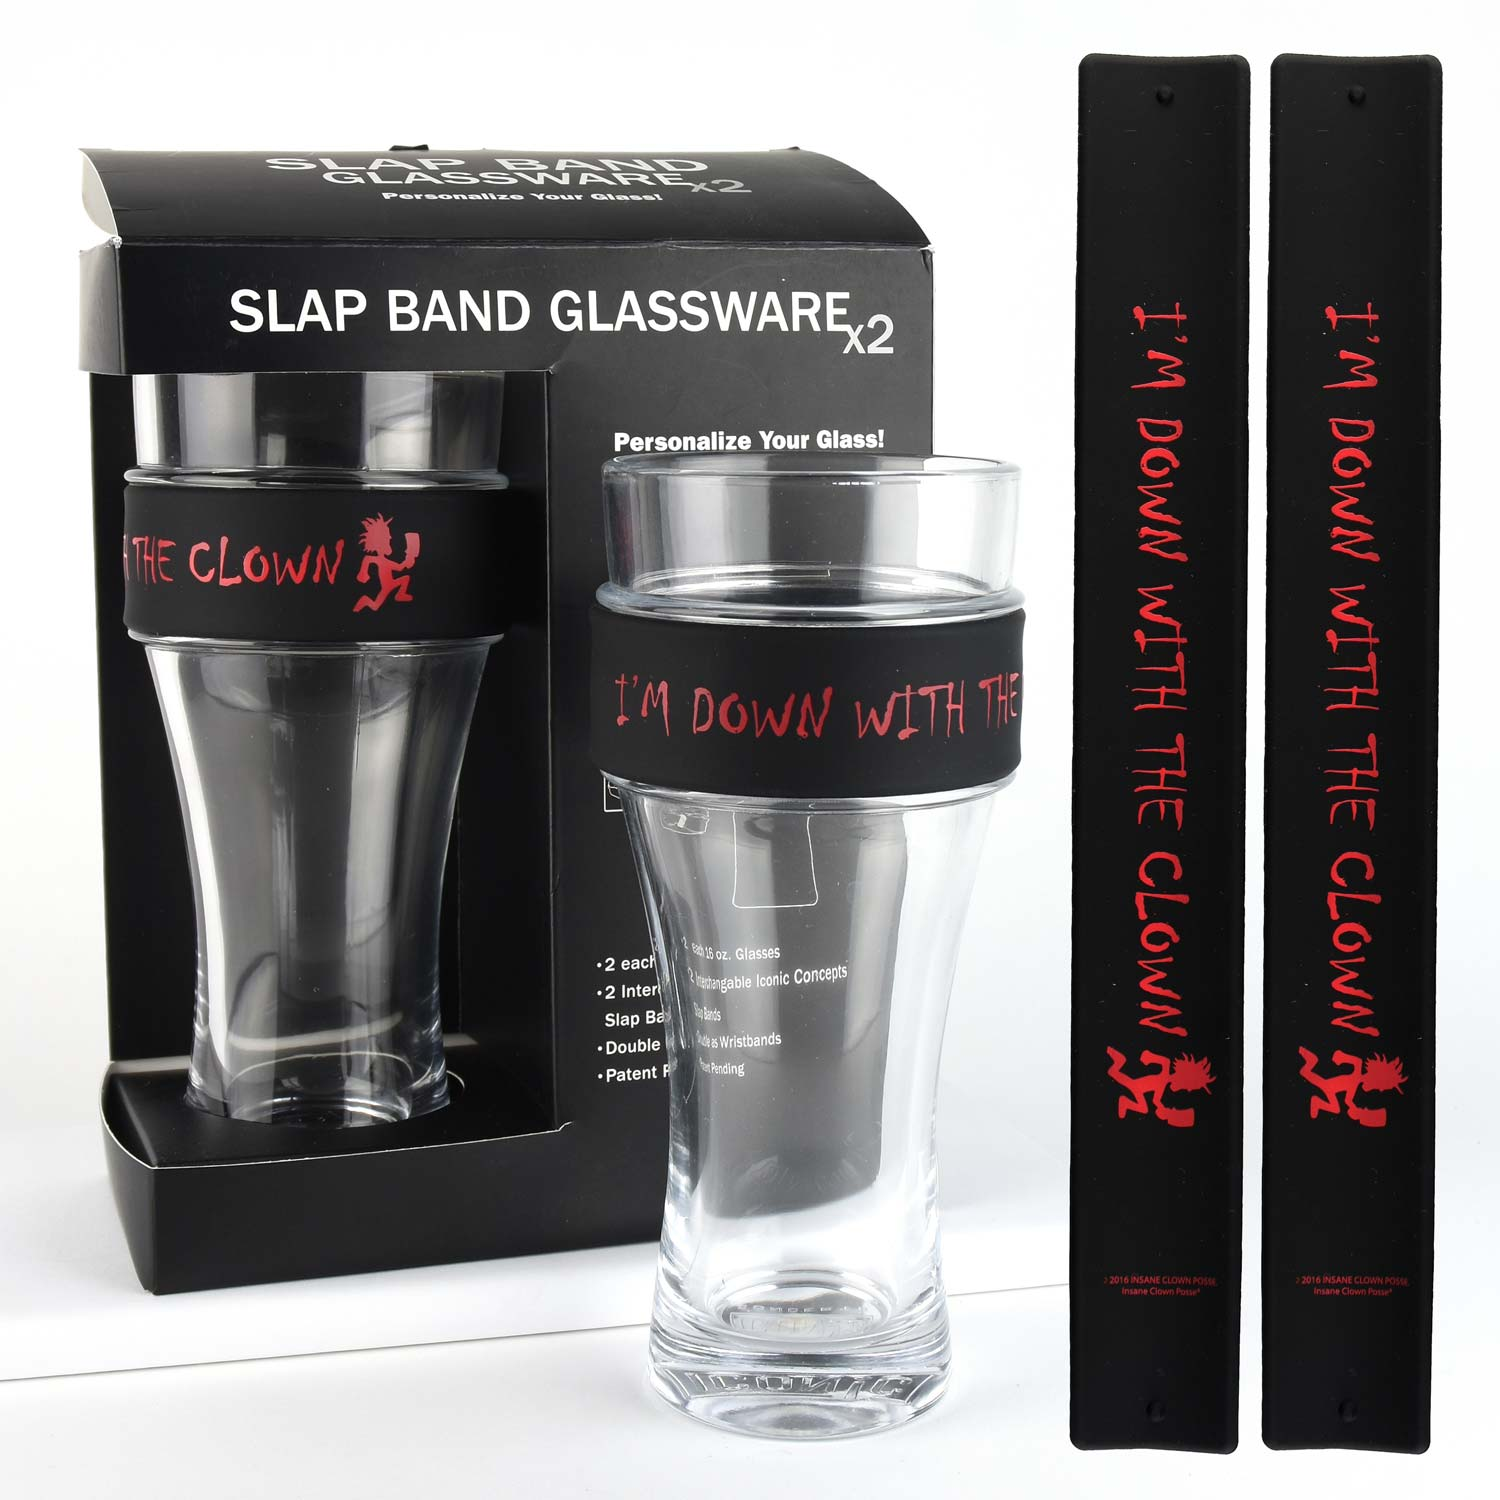 Insane Clown Posse 2 Pack Slap Band Glassware Black With Red Down With The Clown Grphic by Iconic